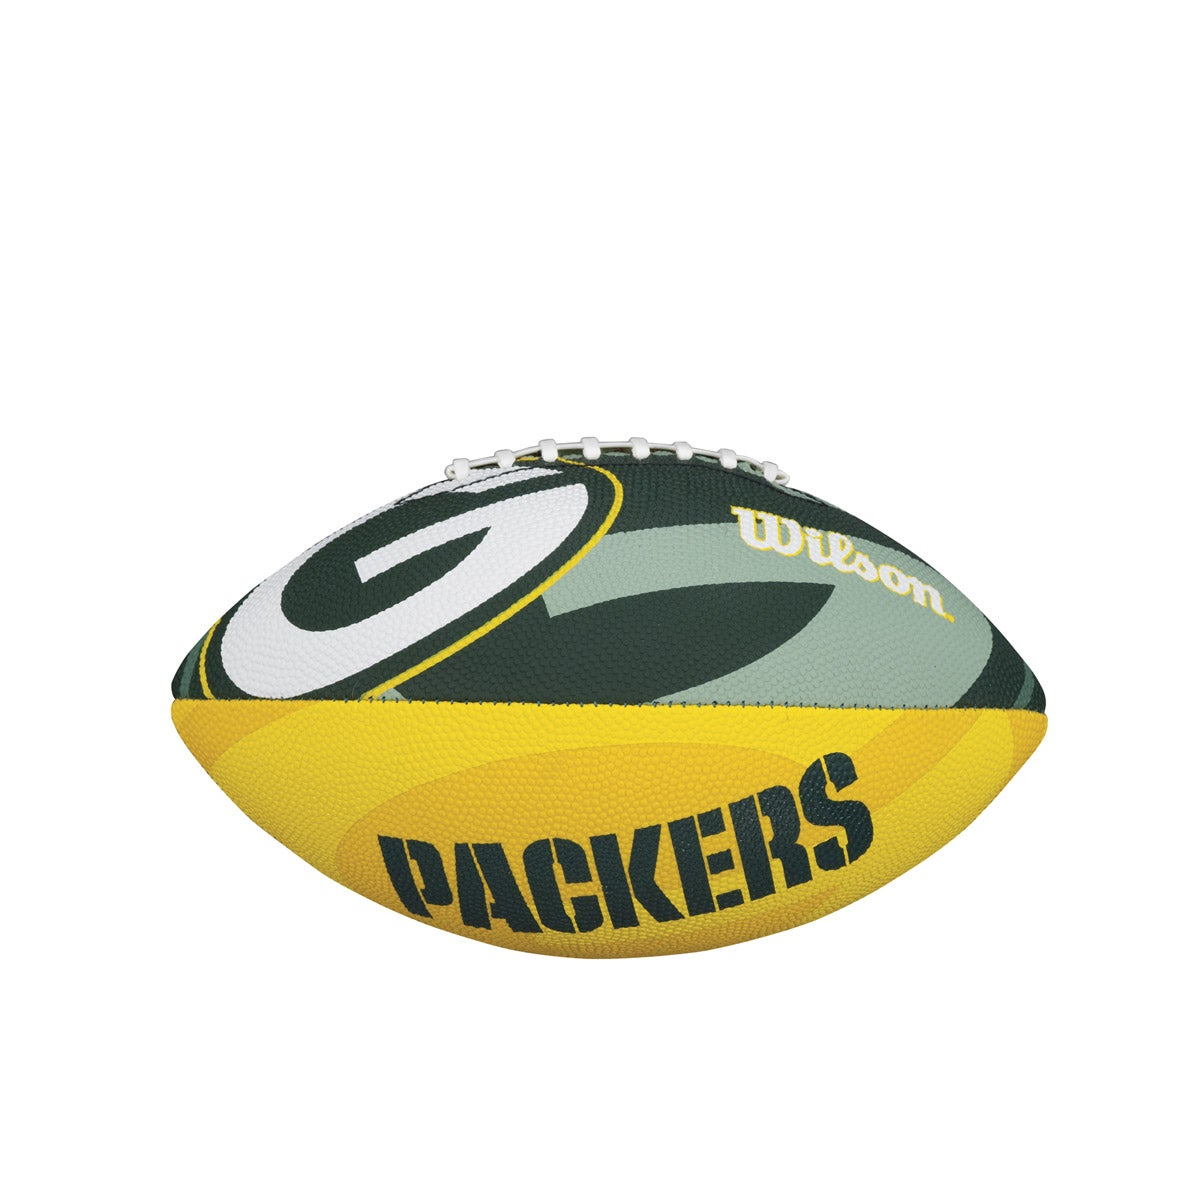 NFL TEAM LOGO JUNIOR SIZE FOOTBALL - GREEN BAY PACKERS